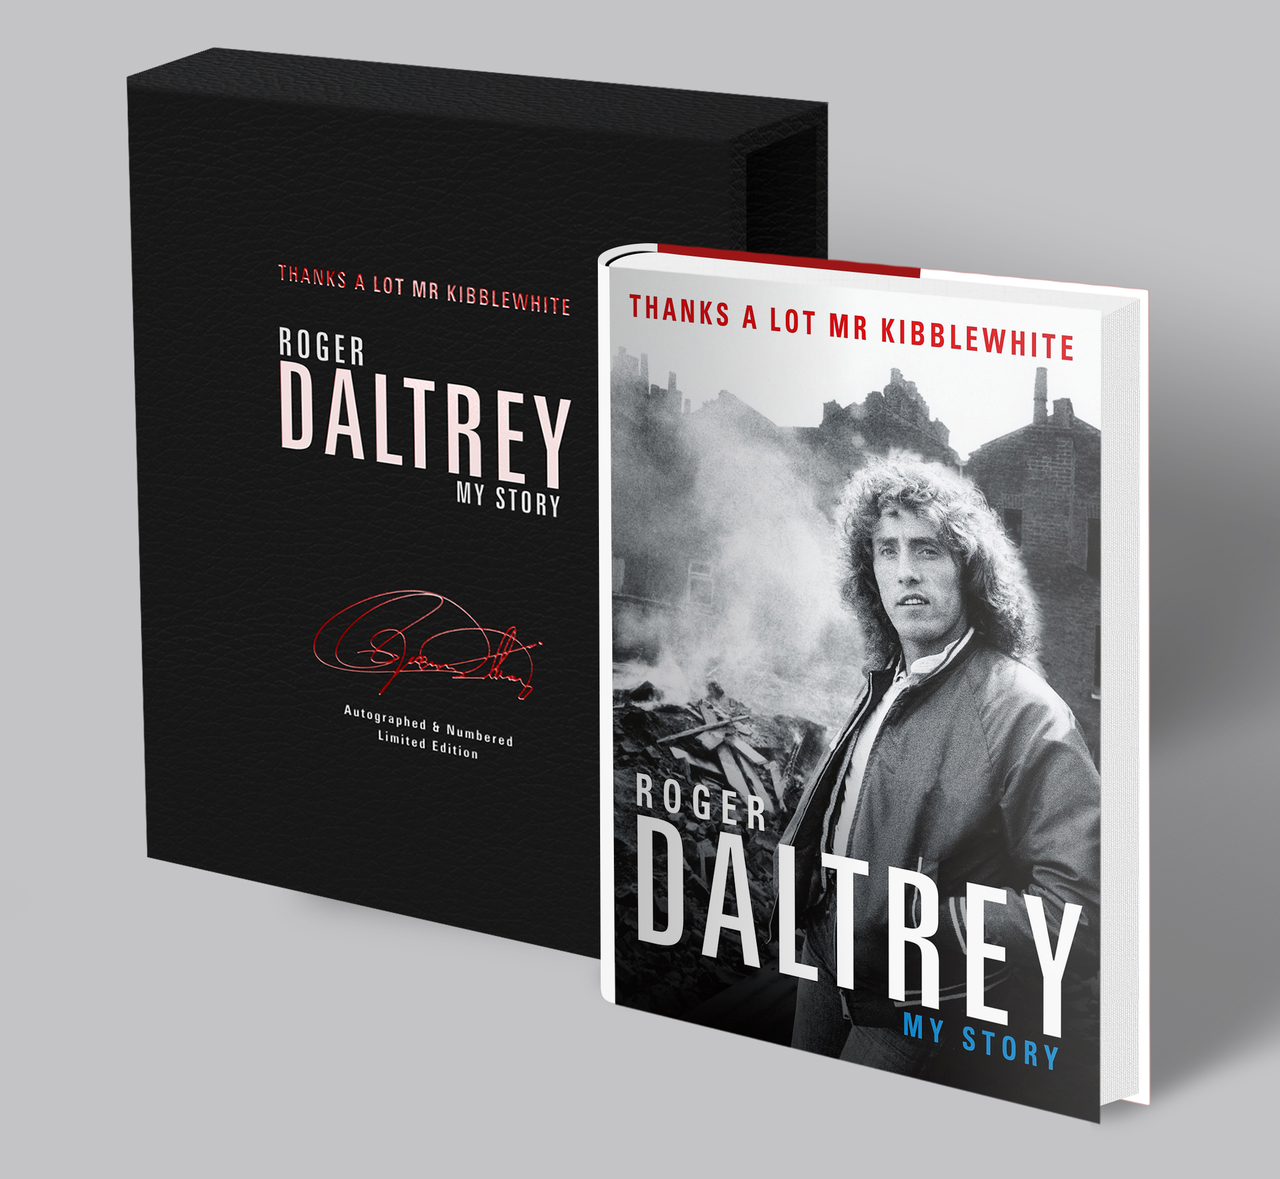 Thanks a Lot Mr Kibblewhite: My Story - Signed & Numbered Limited Edition (1-500) Presented in Deluxe Slipcase